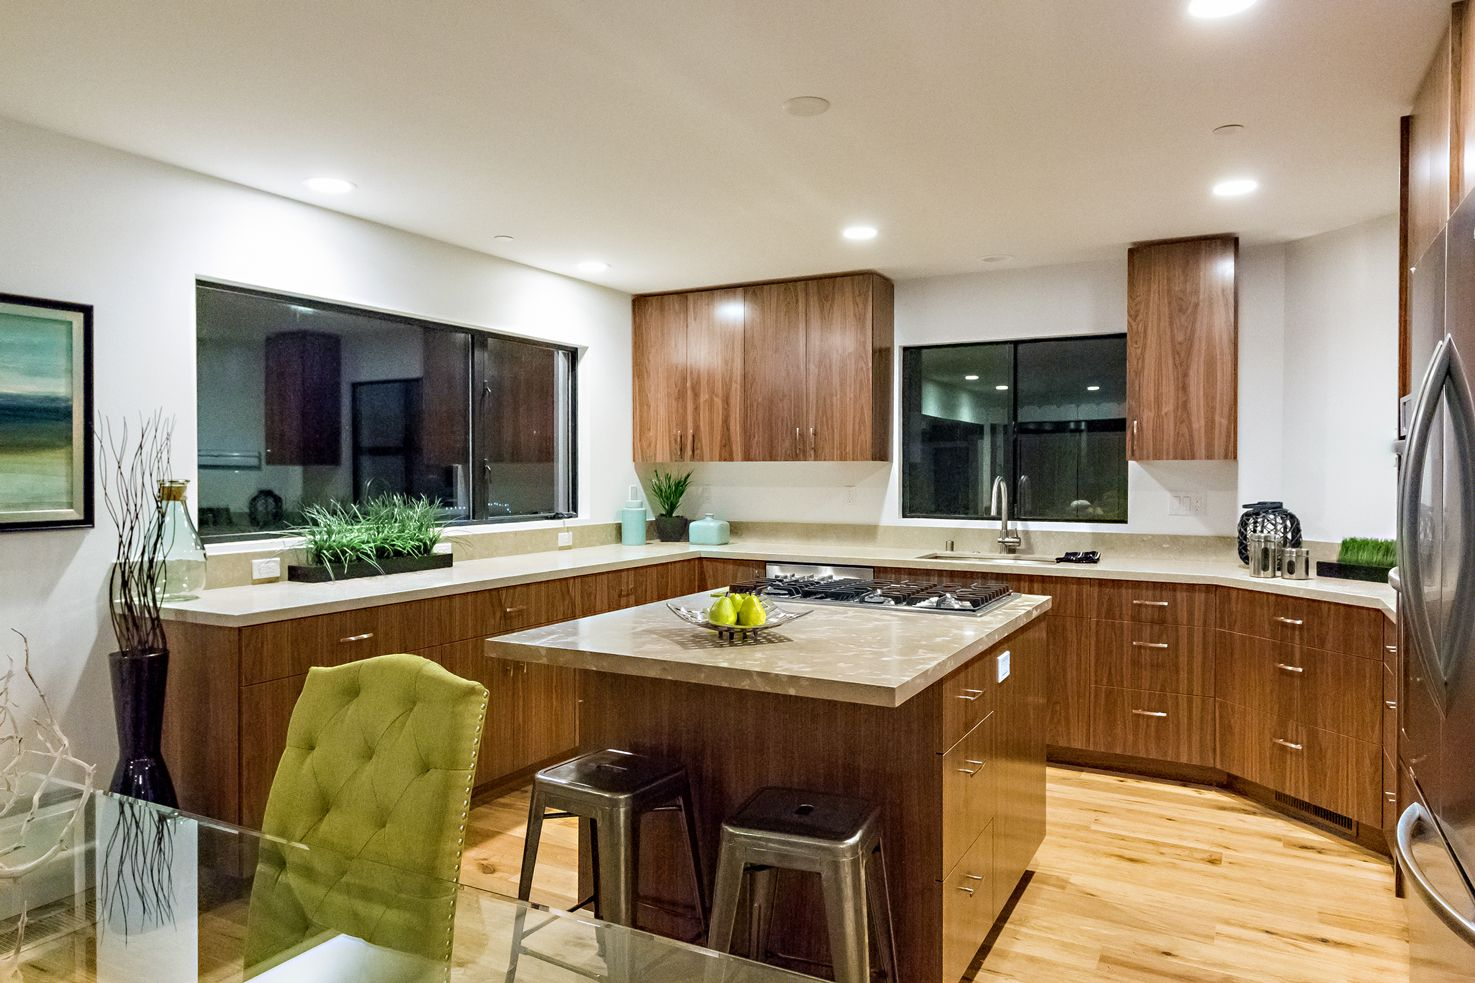 Dining room and kitchen. | Kitchen, Kitchen cabinets ...